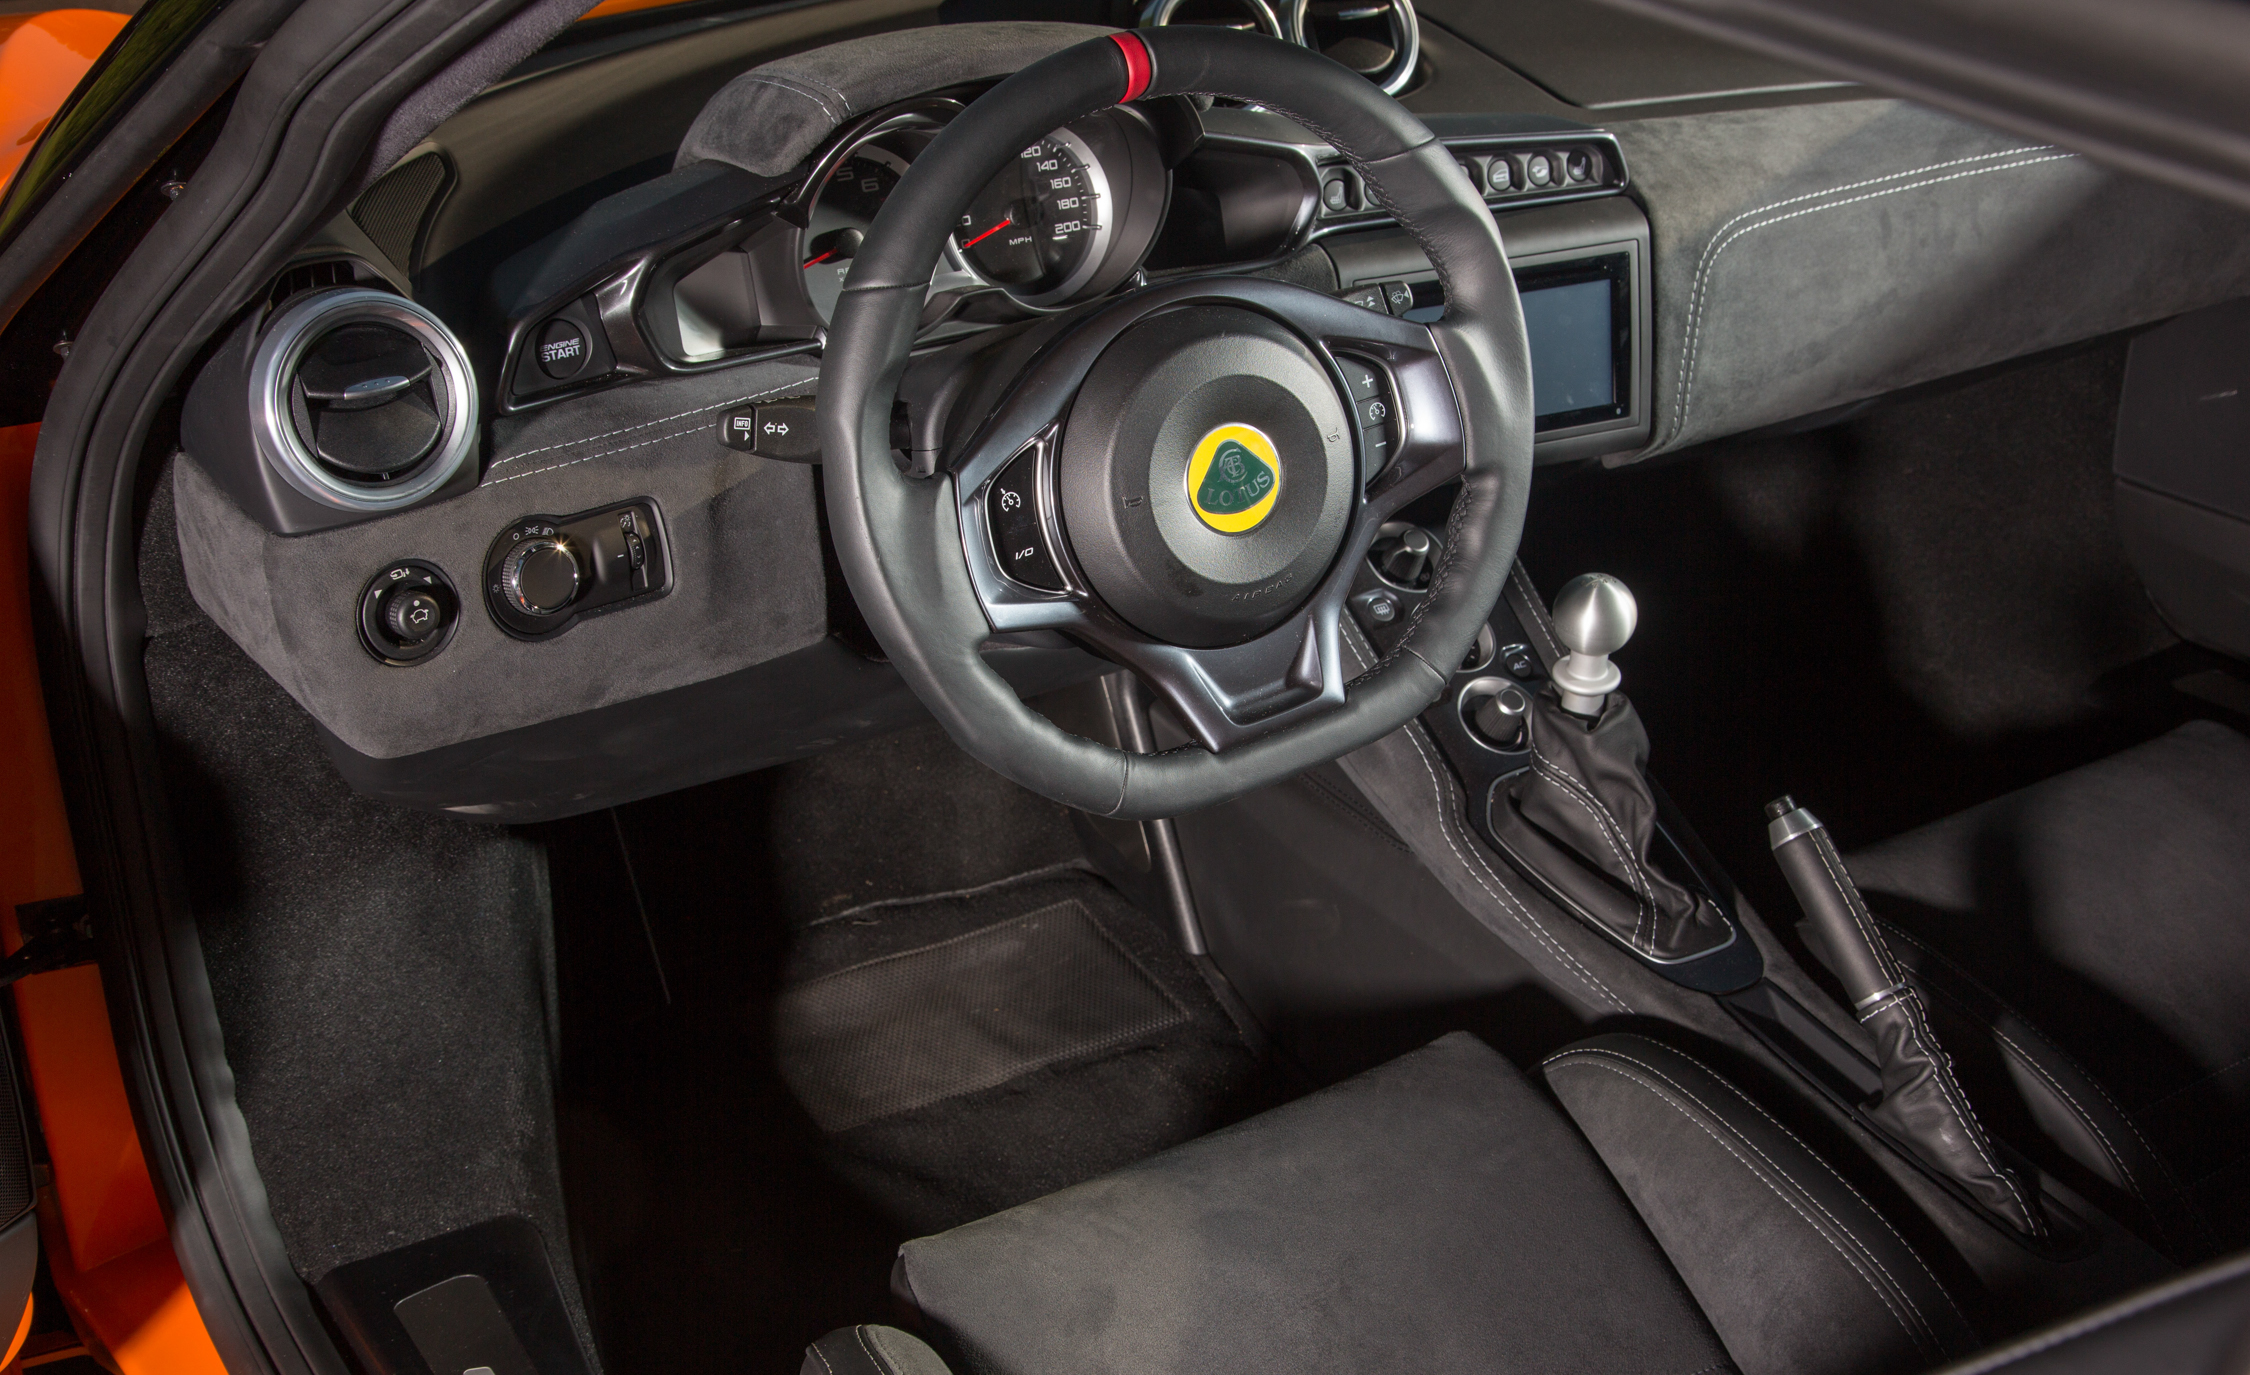 2017 Lotus Evora 400 Interior Dashboard (Photo 9 of 12)